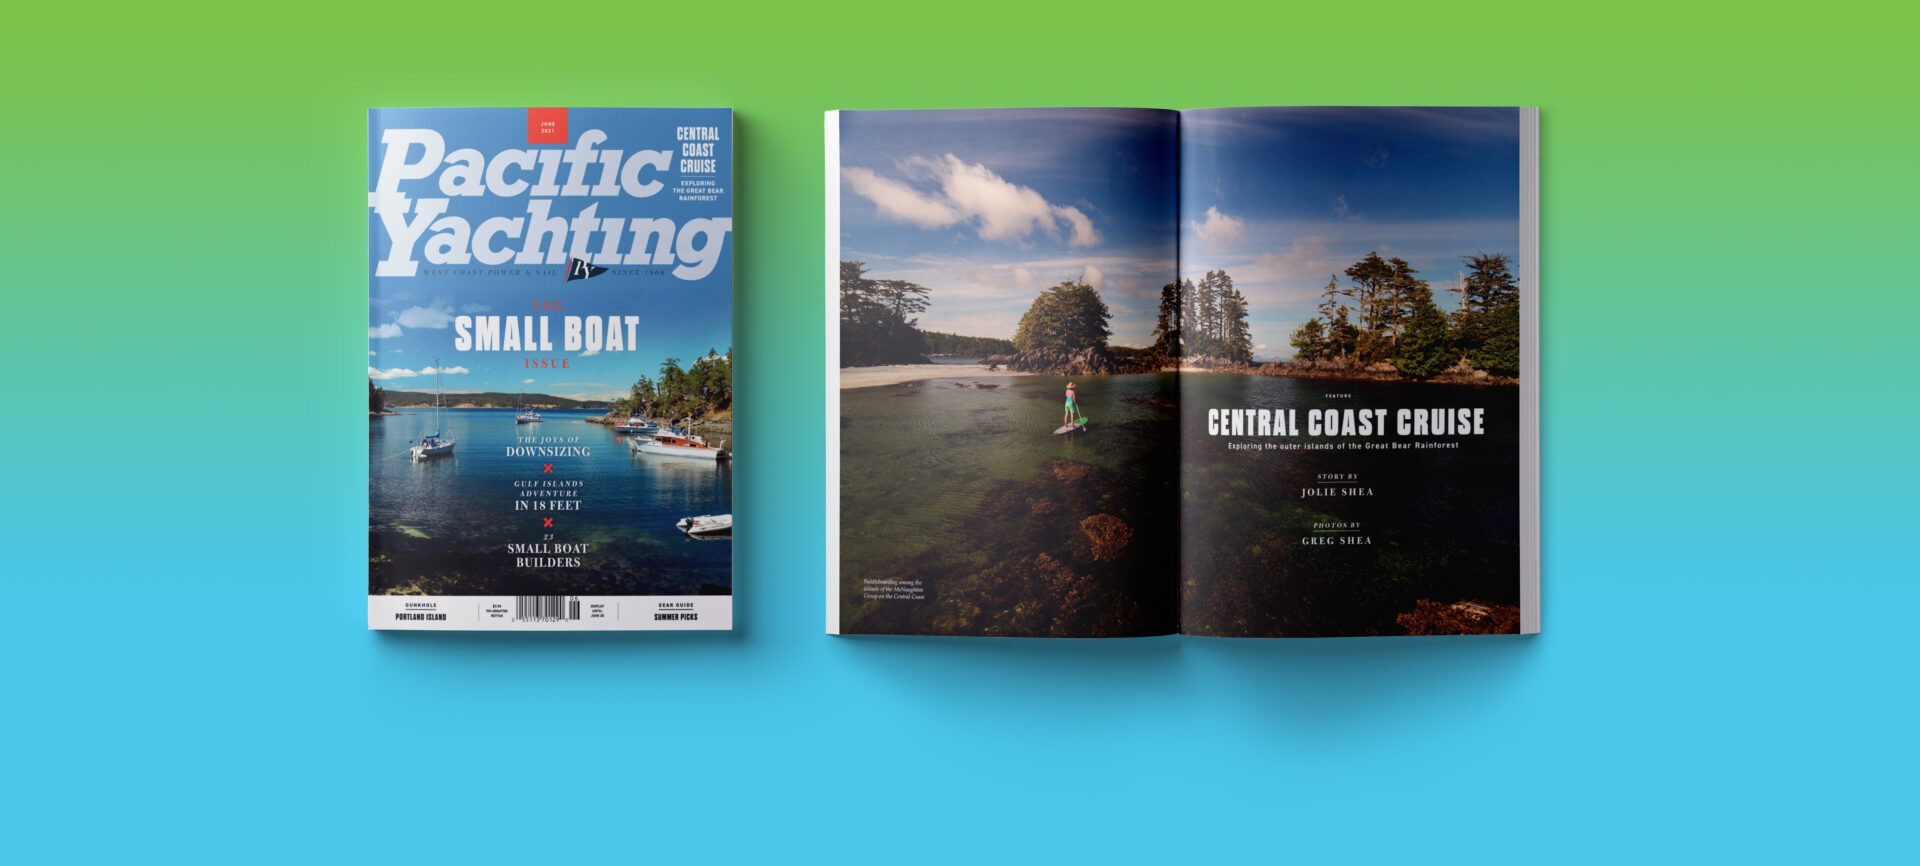 Pacific Yachting June 2021 issue